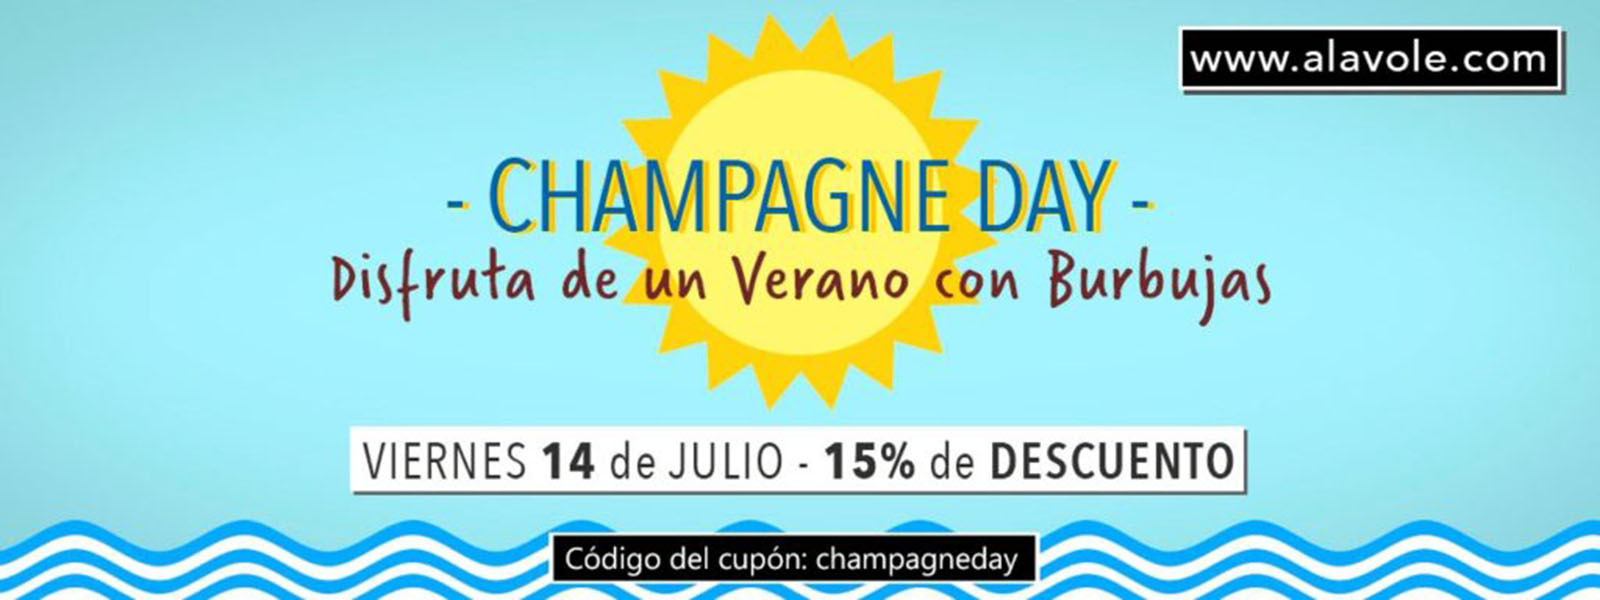 Champagne Day 14/07/2017